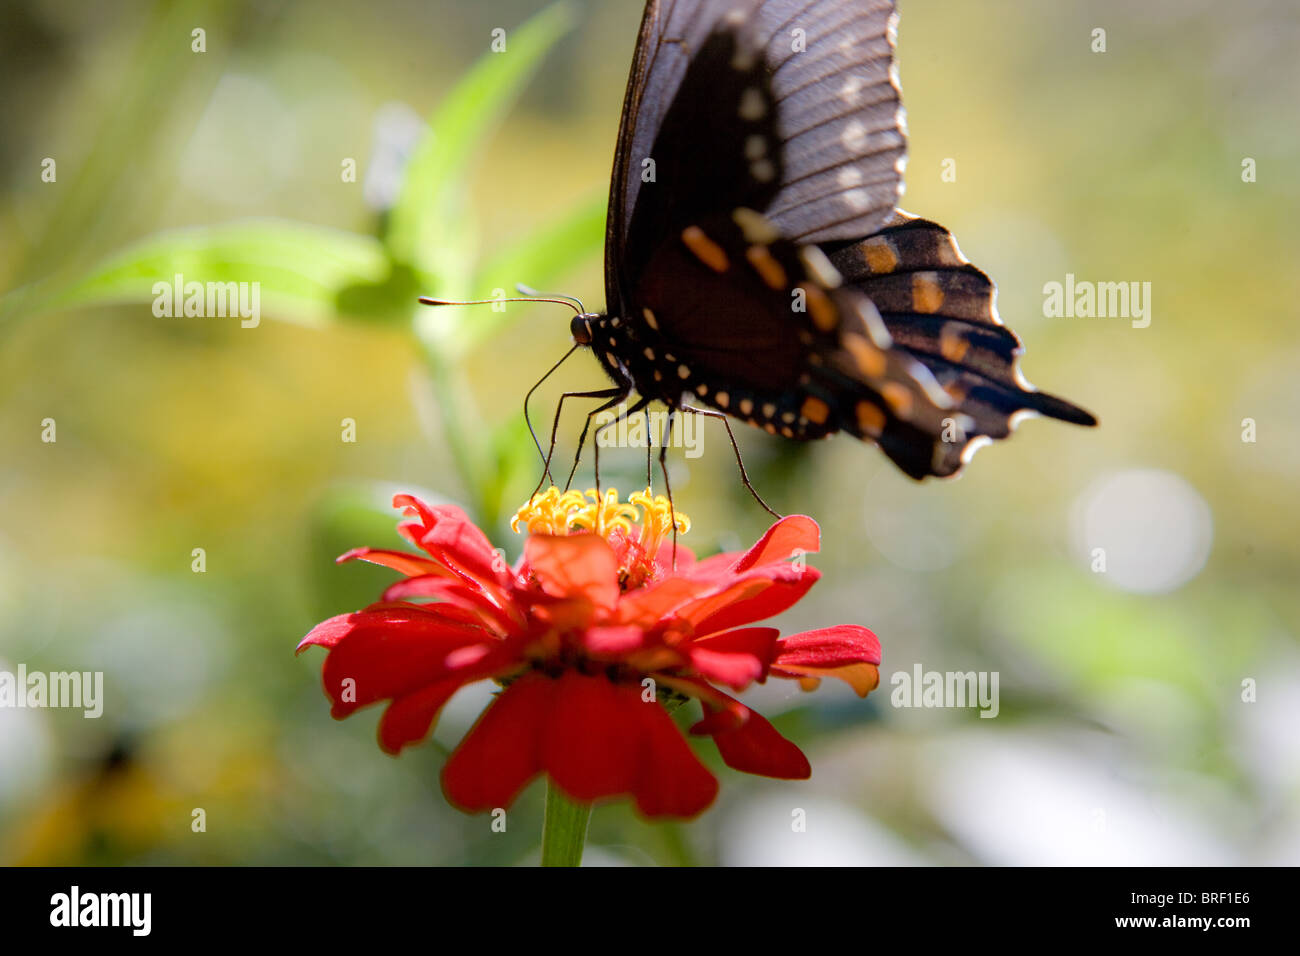 swallowtail butterfly resting on a zinnia flower, eating - Stock Image